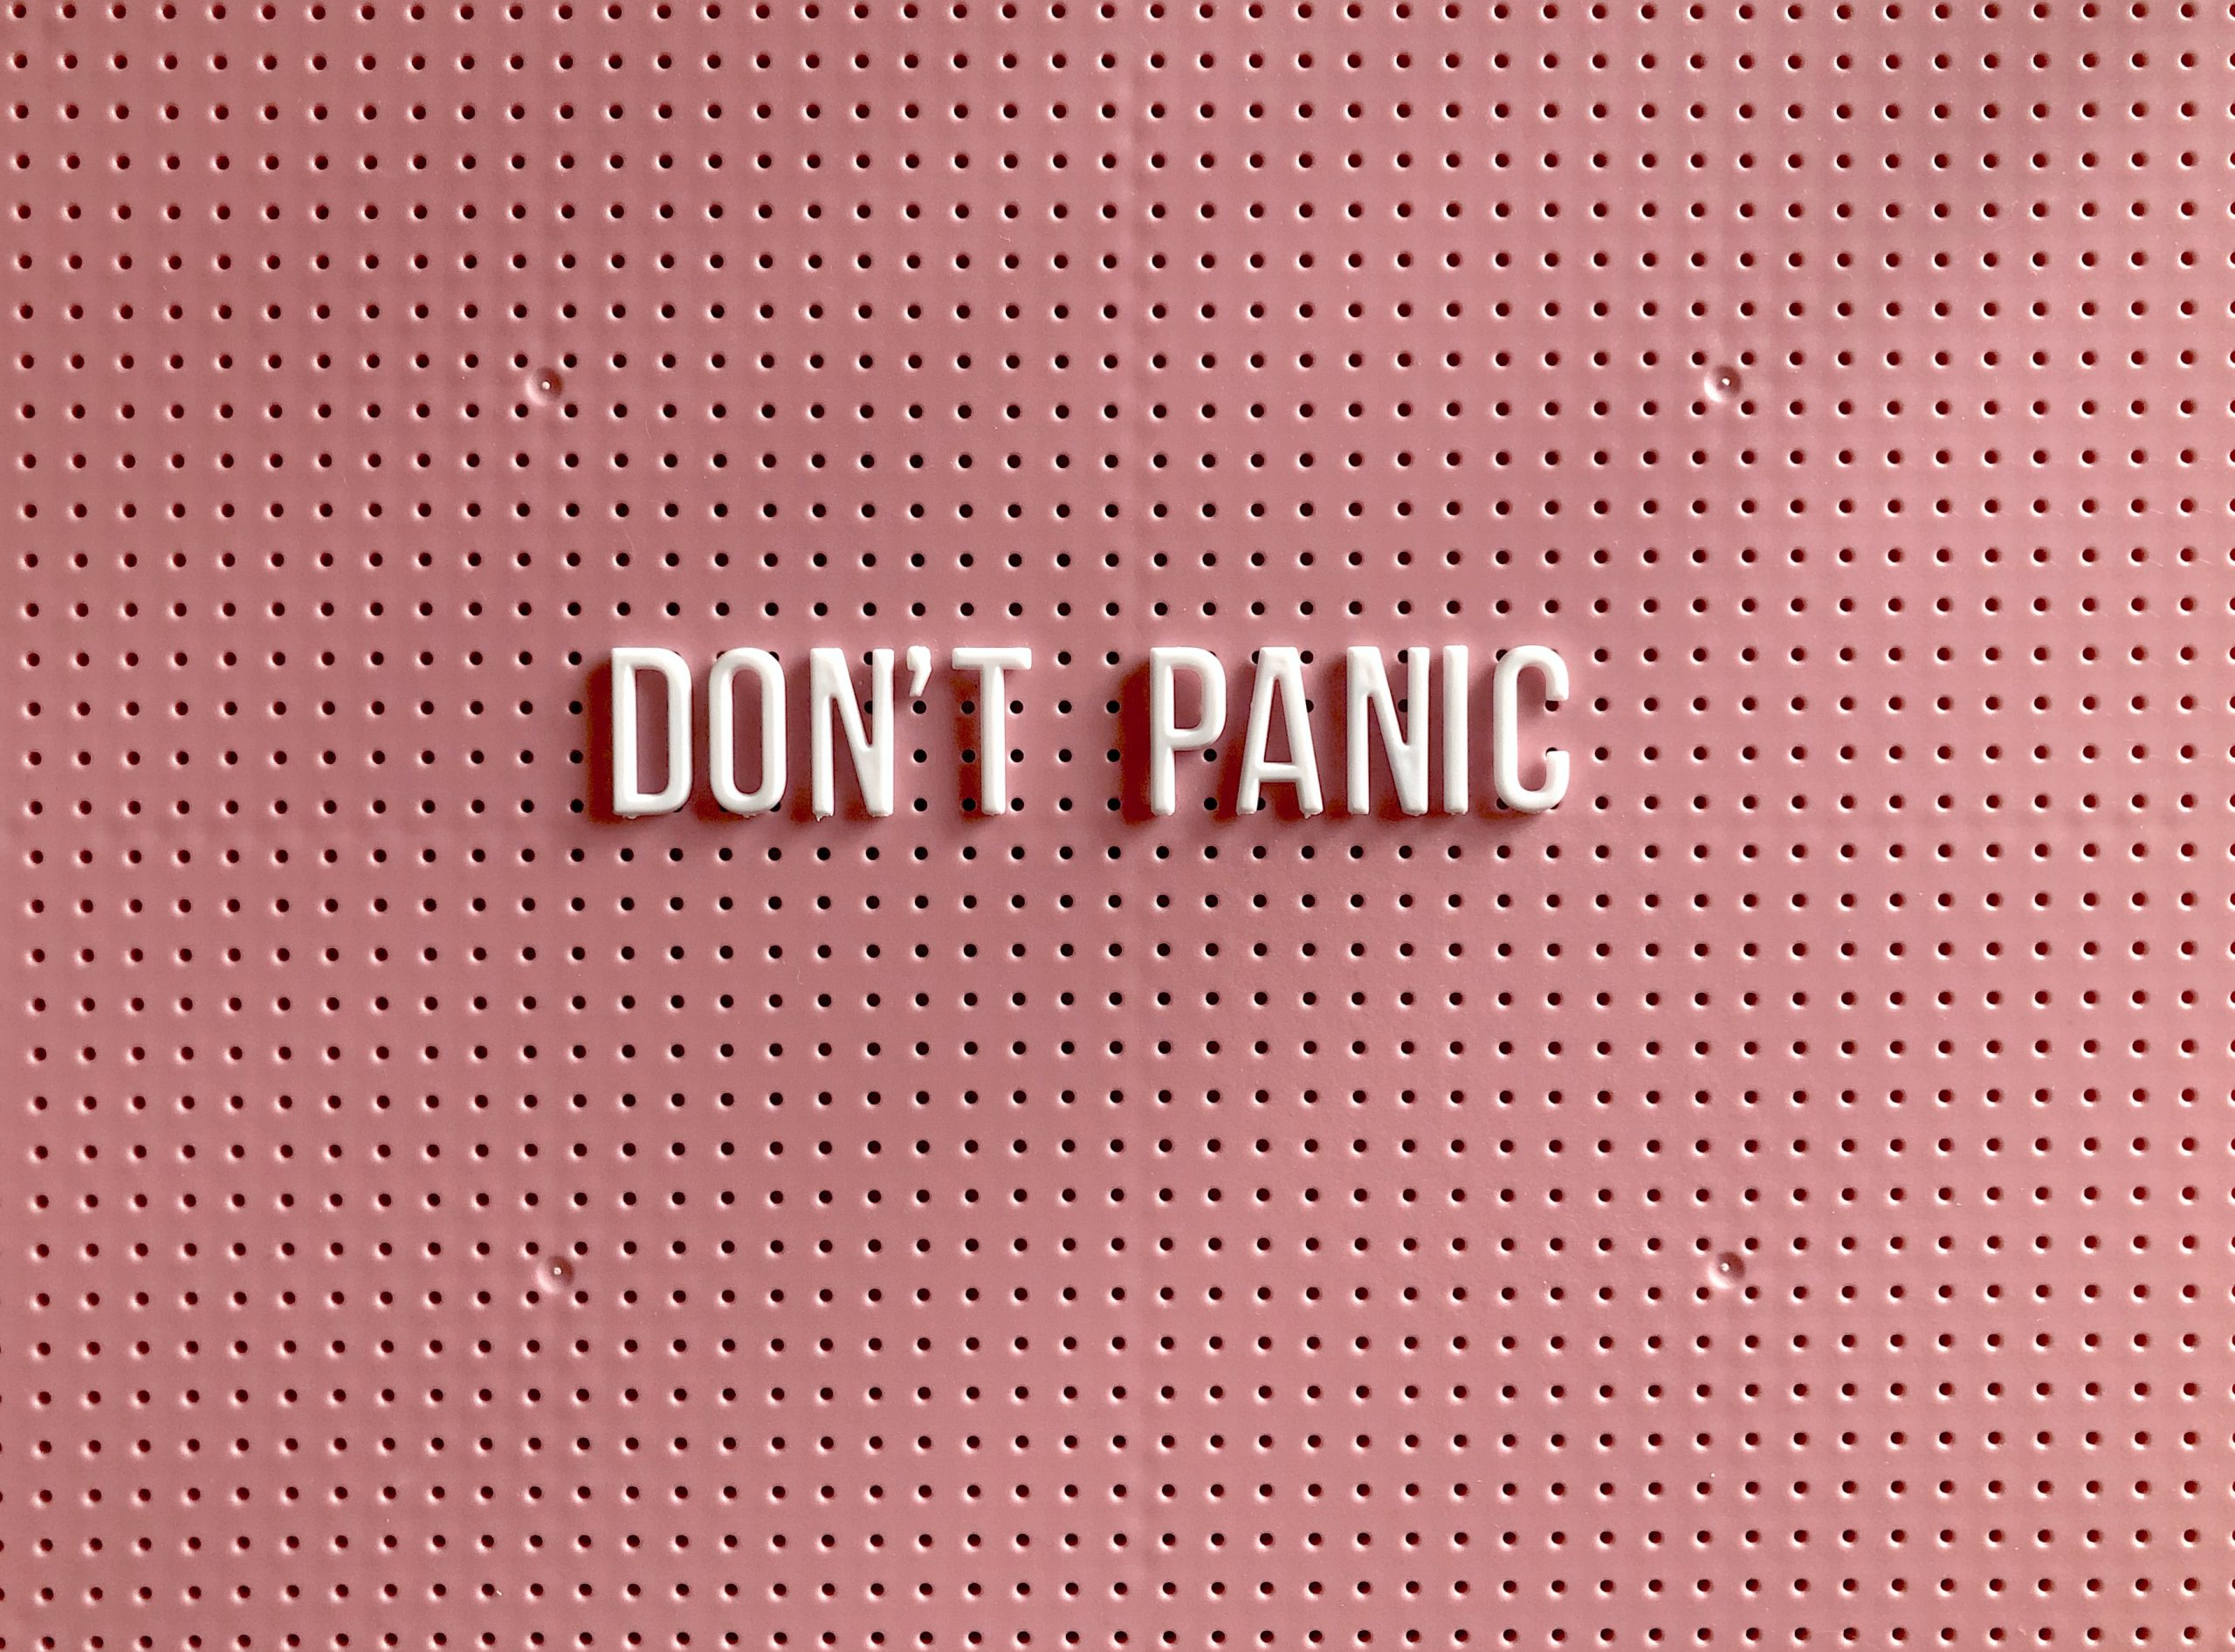 When stepping out of your comfort zone it's important not to panic.